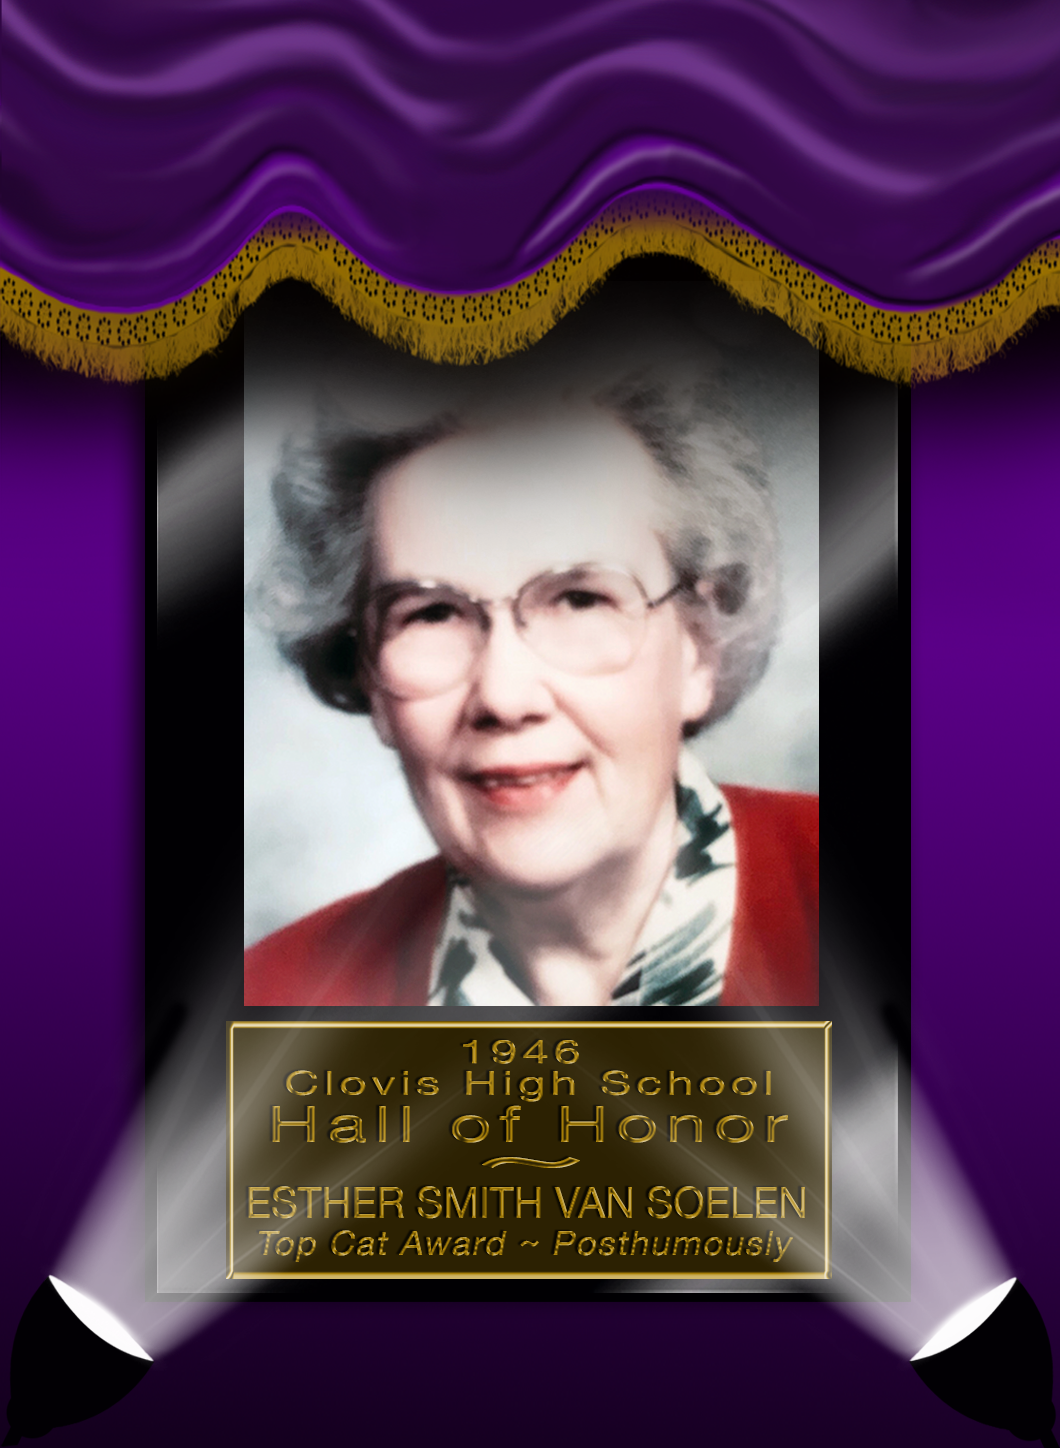 Image of Esther Smith Van Soelen